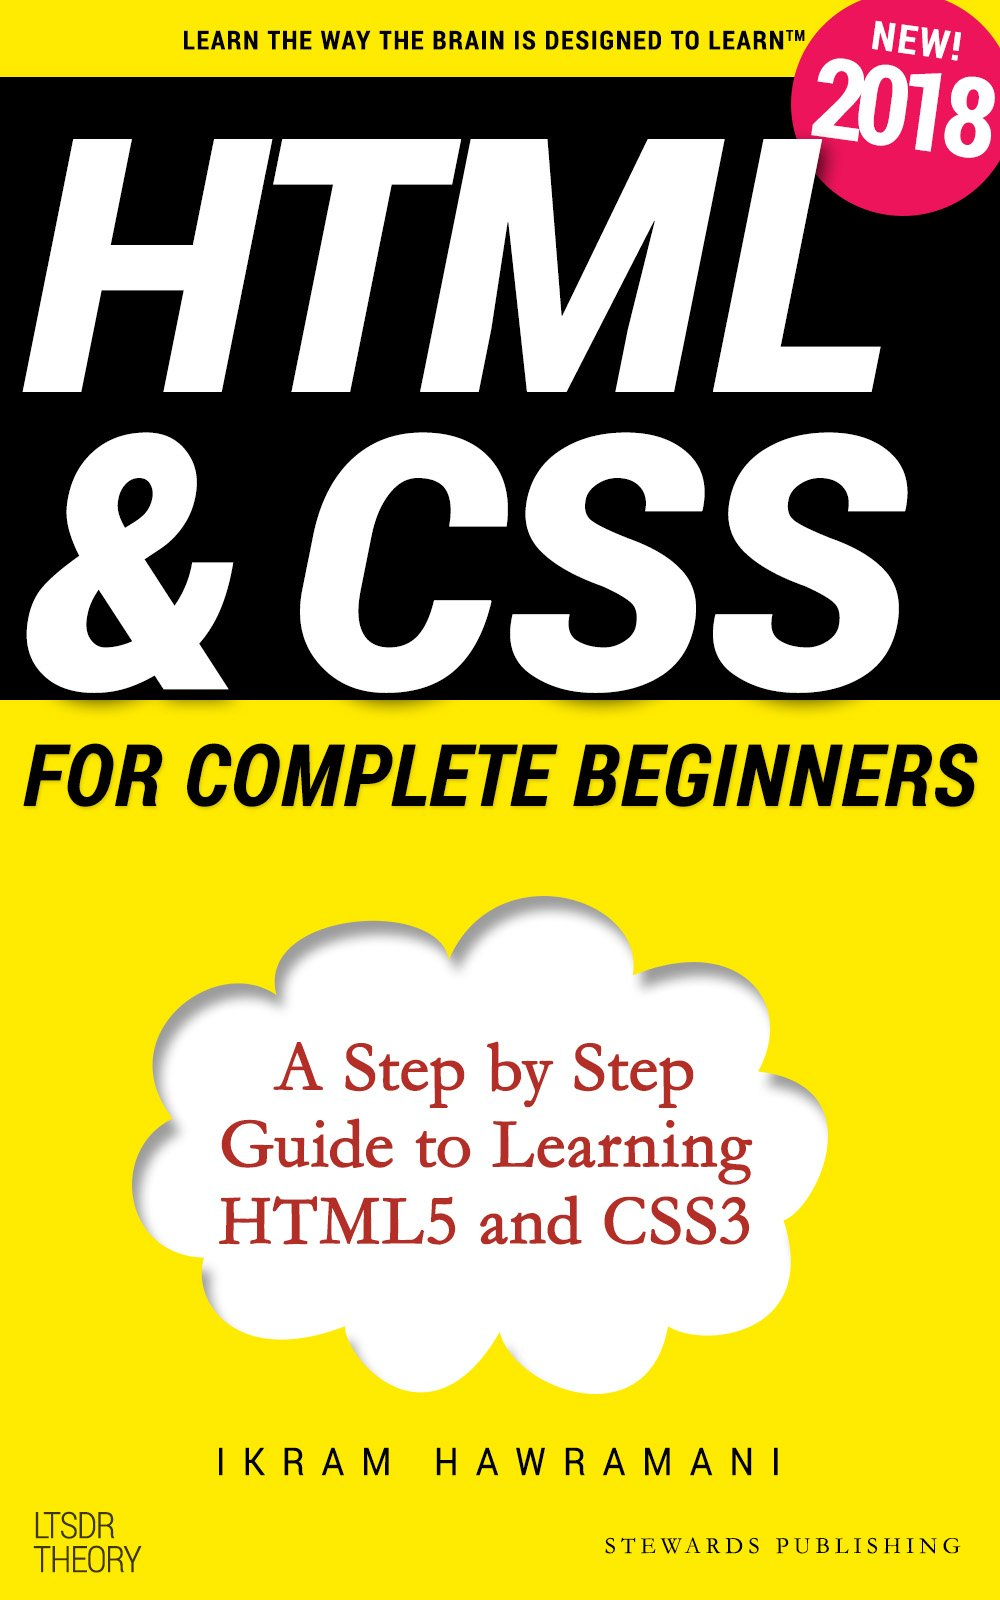 HTML & CSS for Complete Beginners: A Step by Step Guide to Learning HTML5 and CSS3